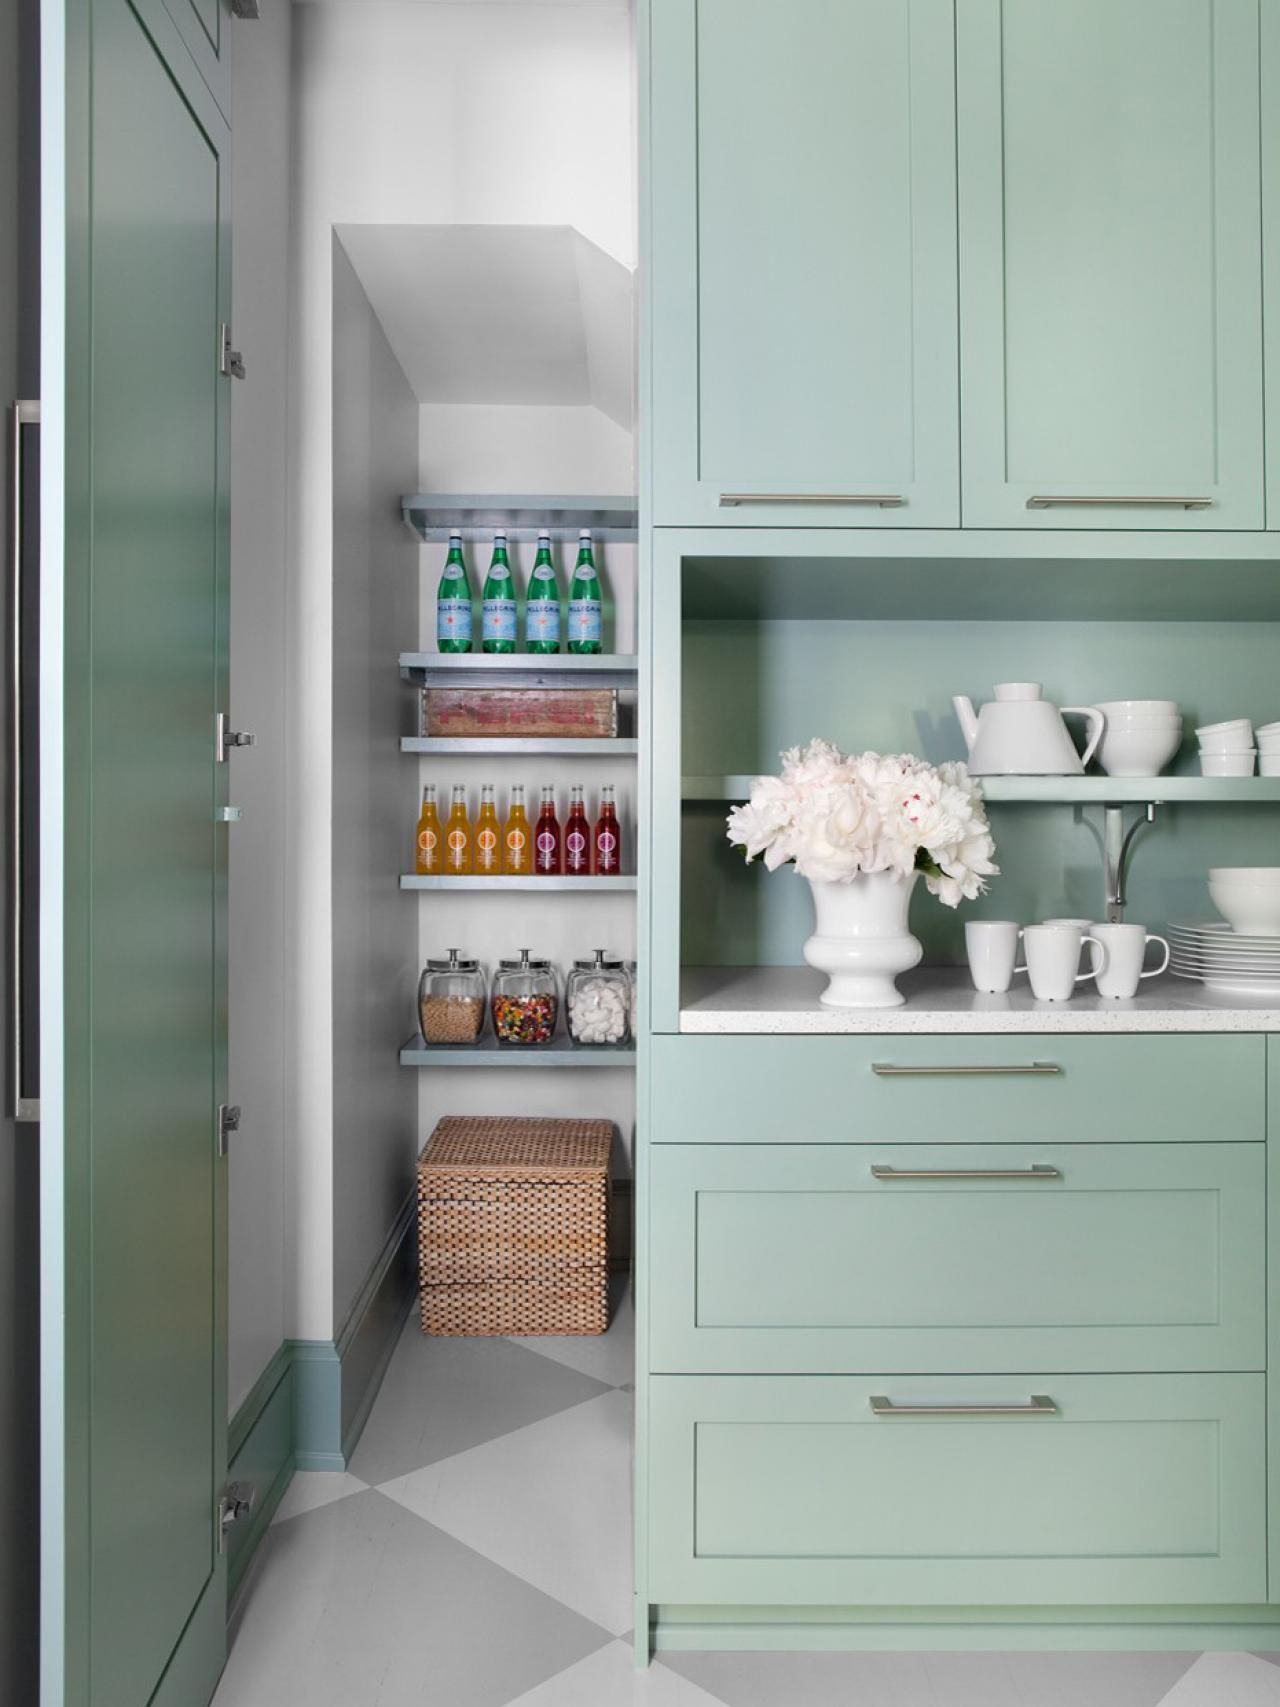 What looks like a door to a simple cabinet opens up to reveal a ...